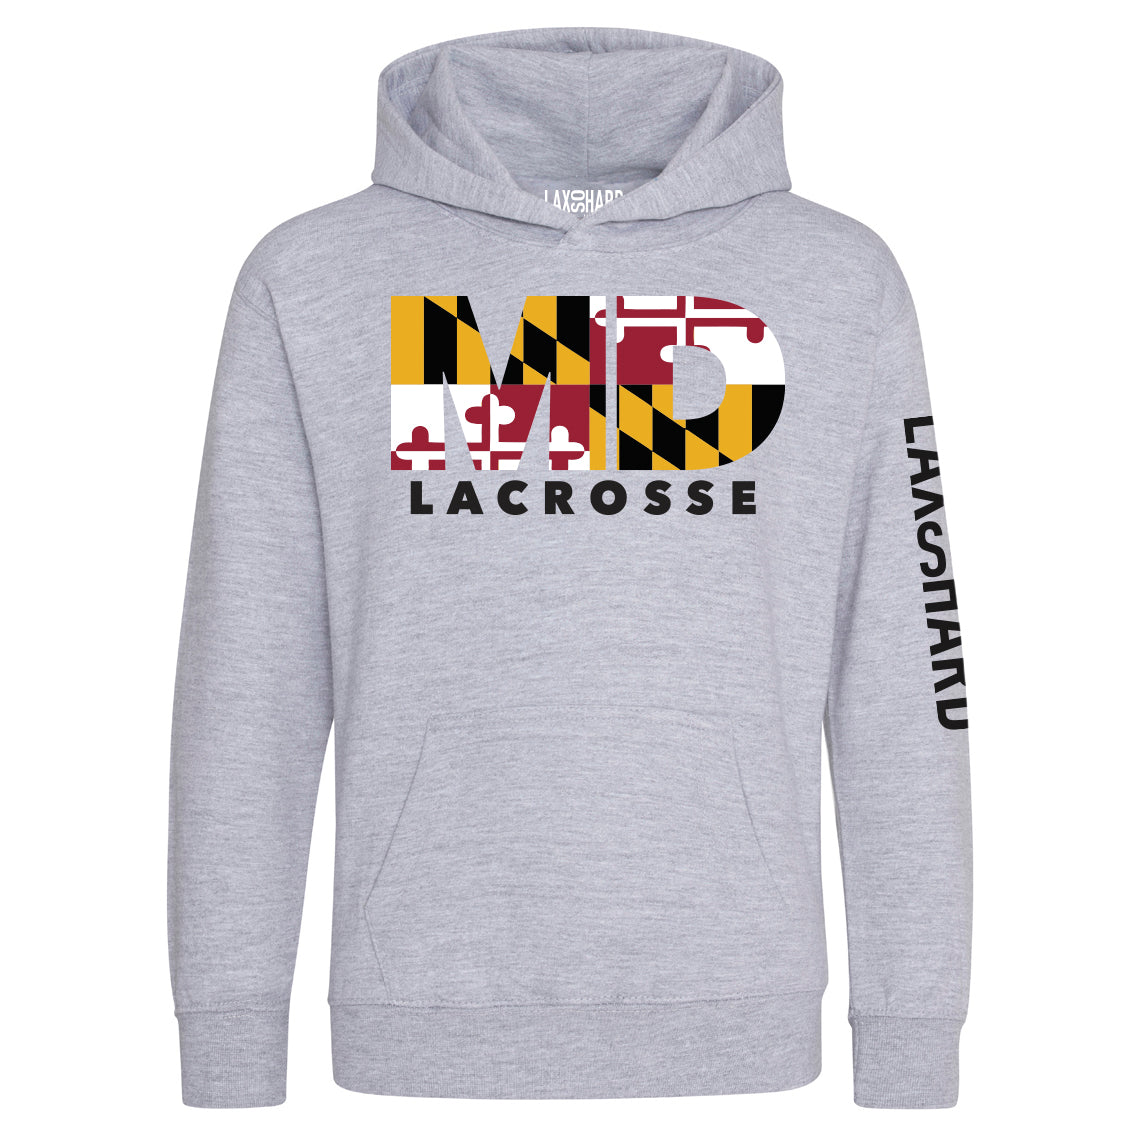 Youth Maryland Lacrosse Hoodie - Gray